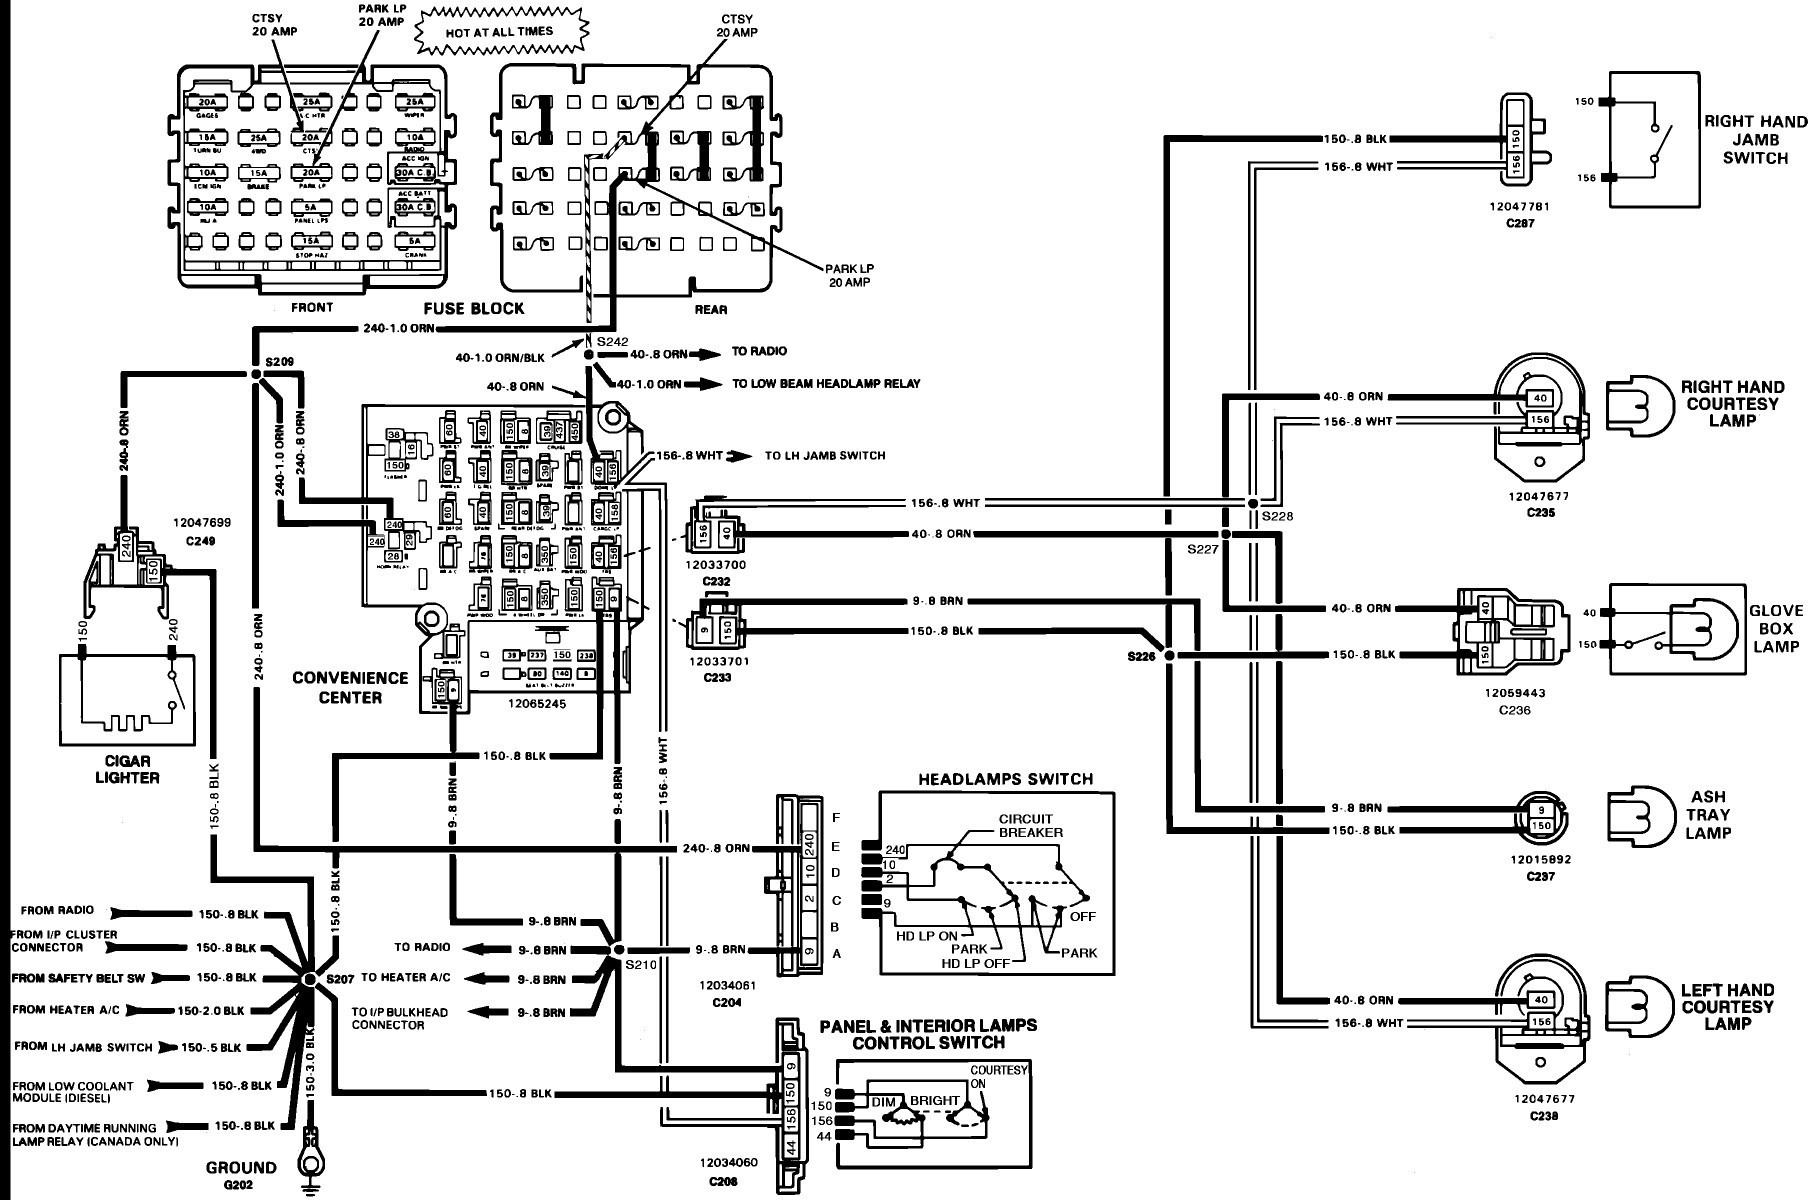 Telsta Bucket Truck Wiring Diagram Telsta Bucket Truck